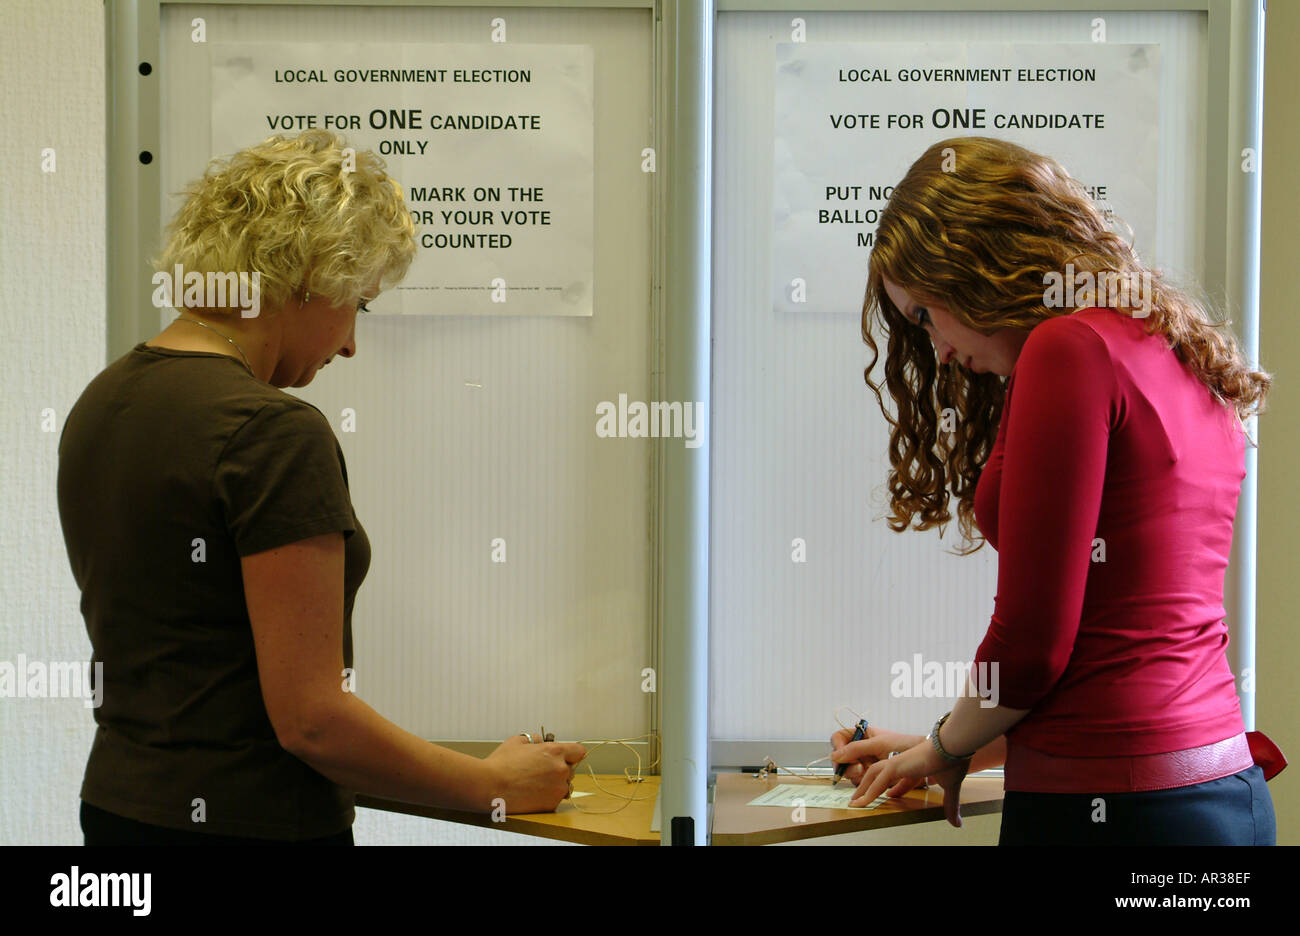 people-vote-women-voting-booth-votes-for